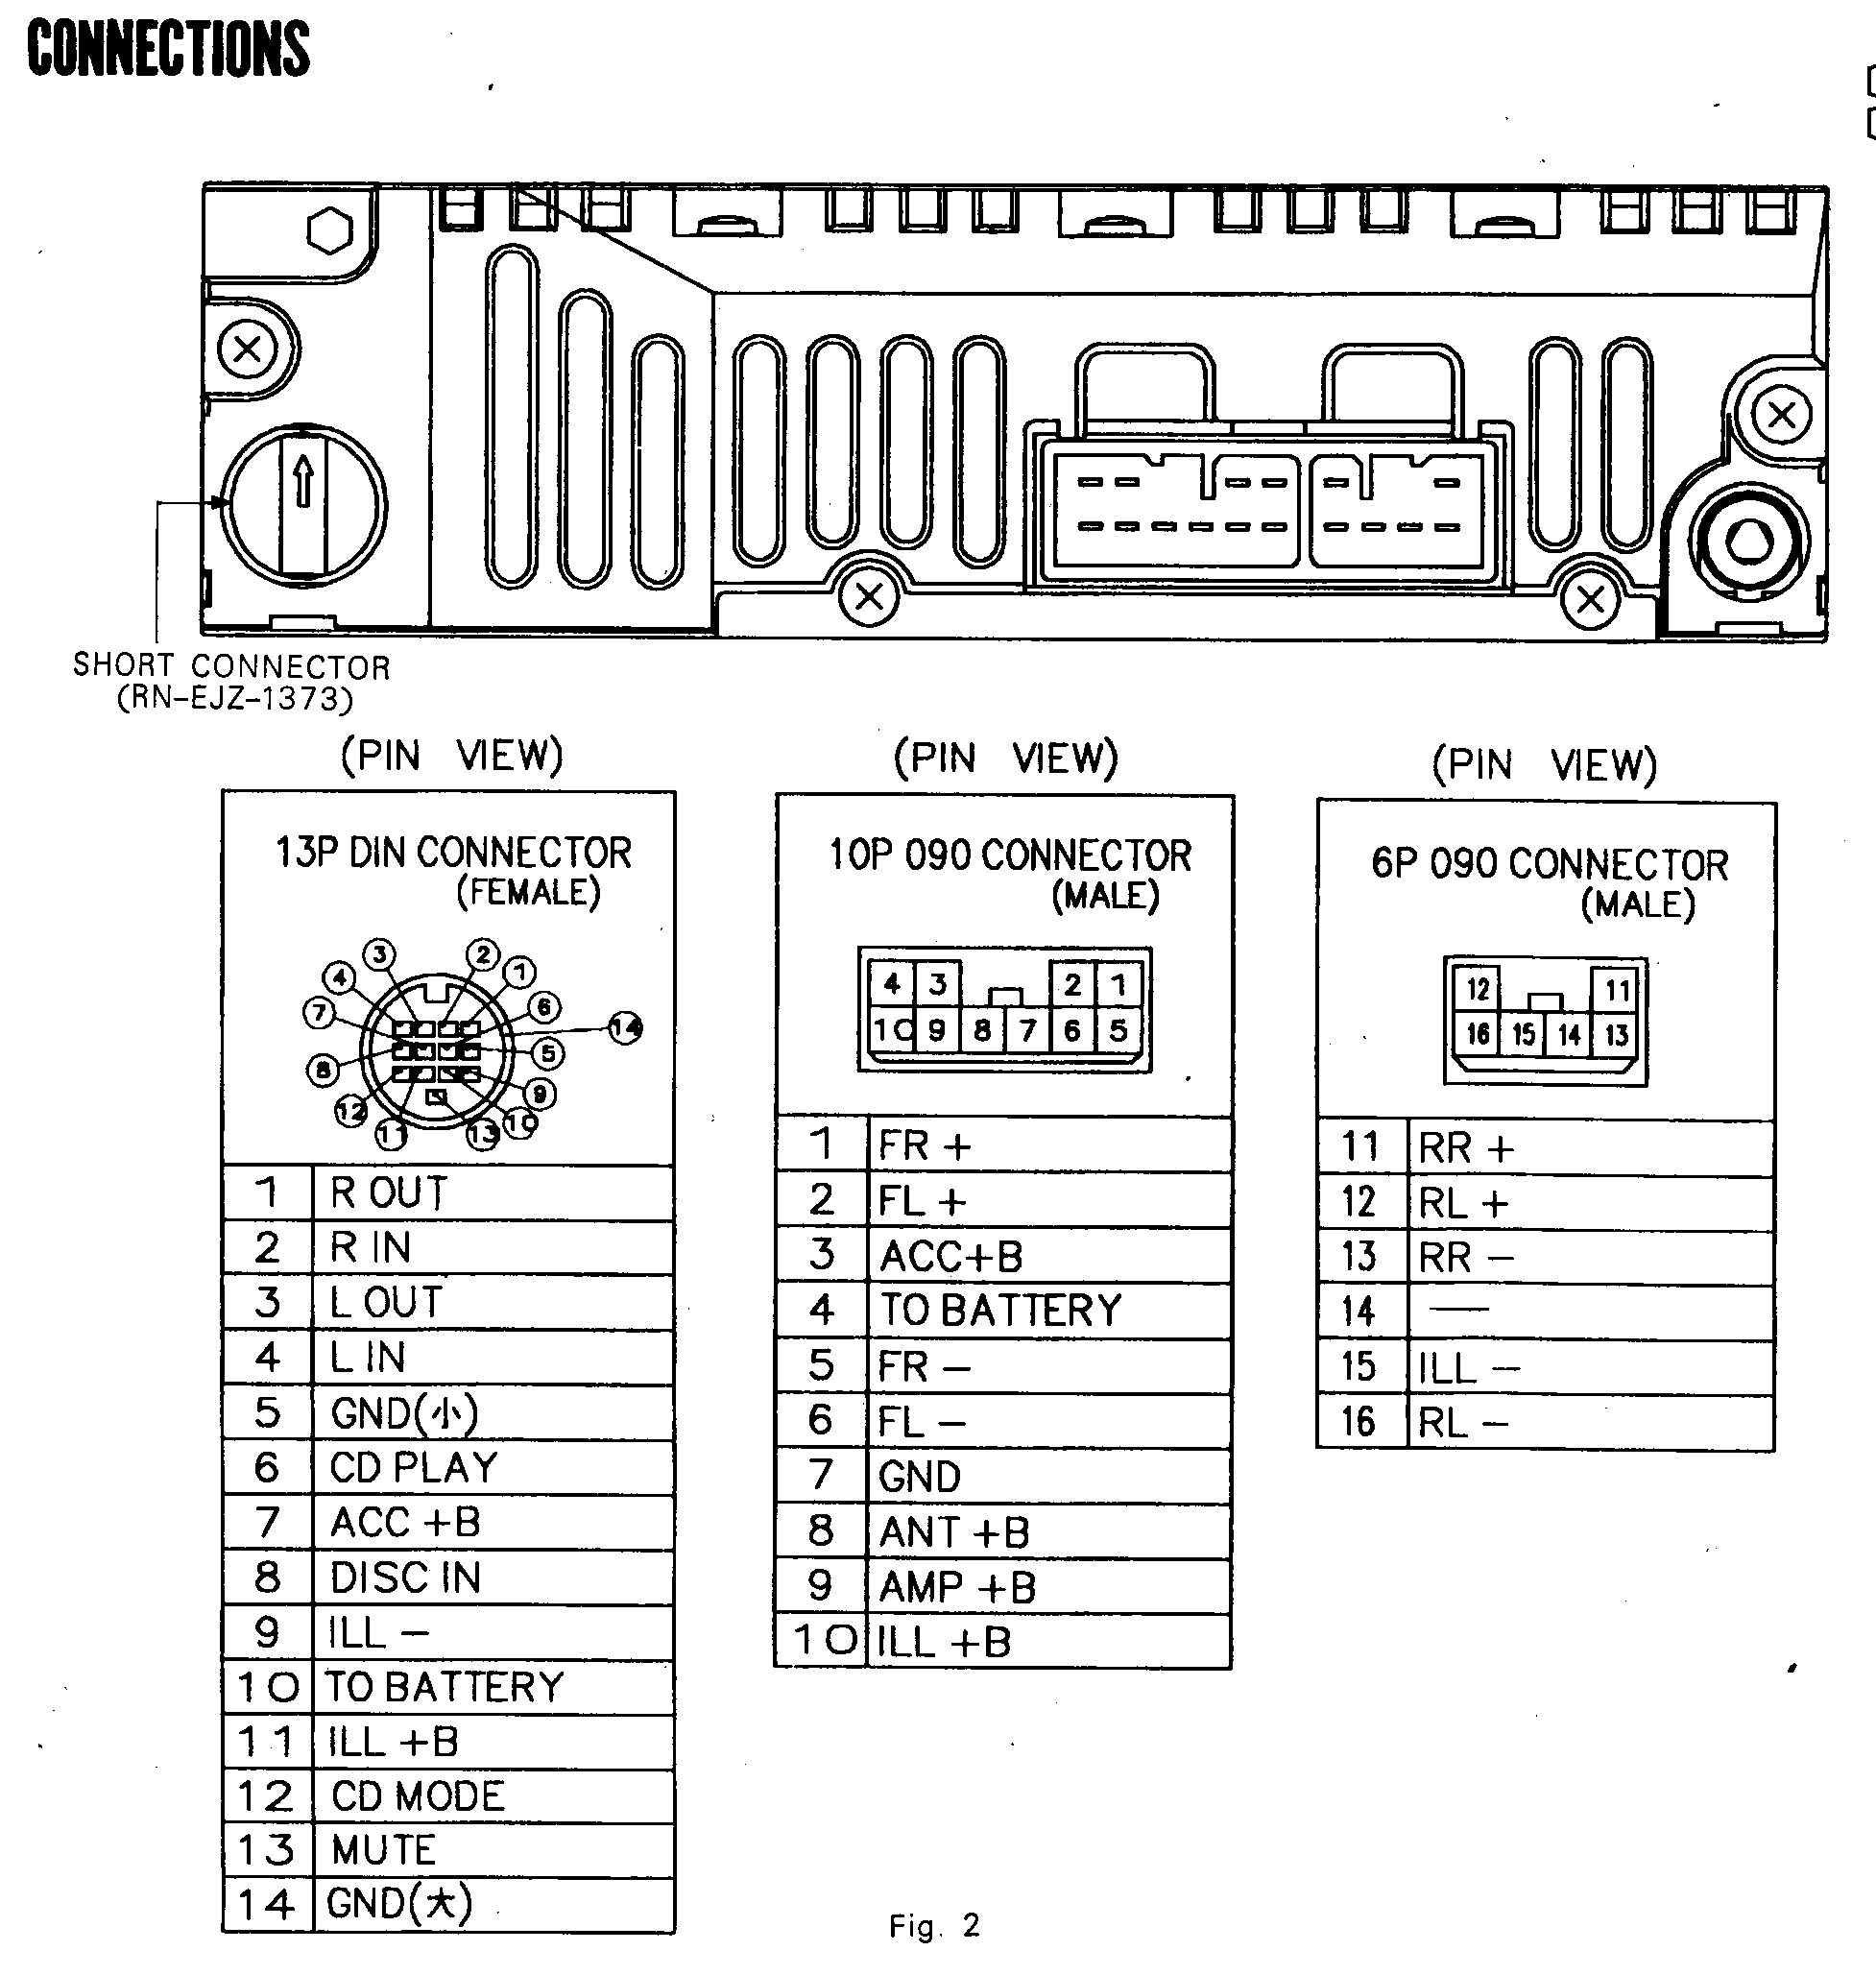 Car Deck Wiring Diagram | Wiring Library - Bose Car Amplifier Wiring Diagram